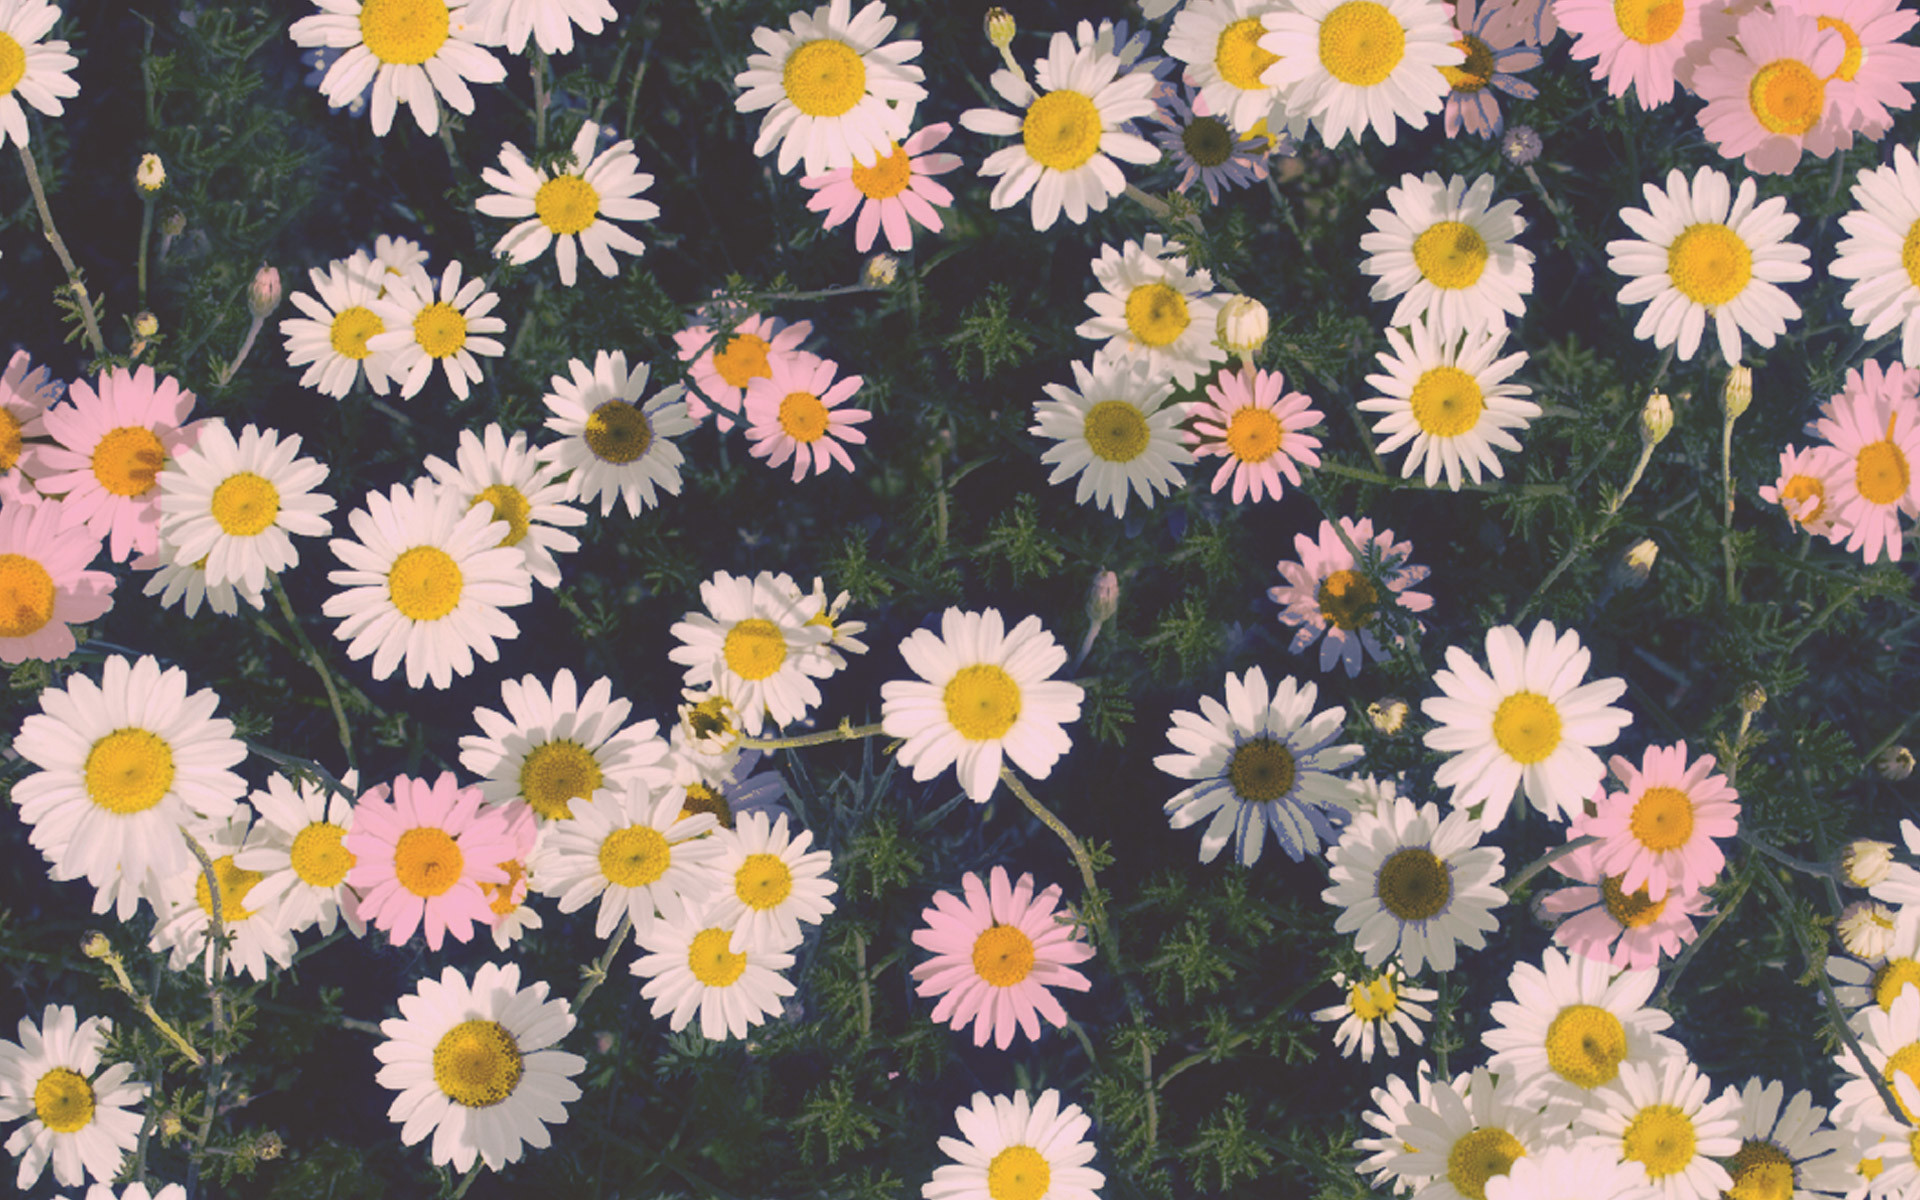 Spring Daisy Flower Wallpaper 51 Images